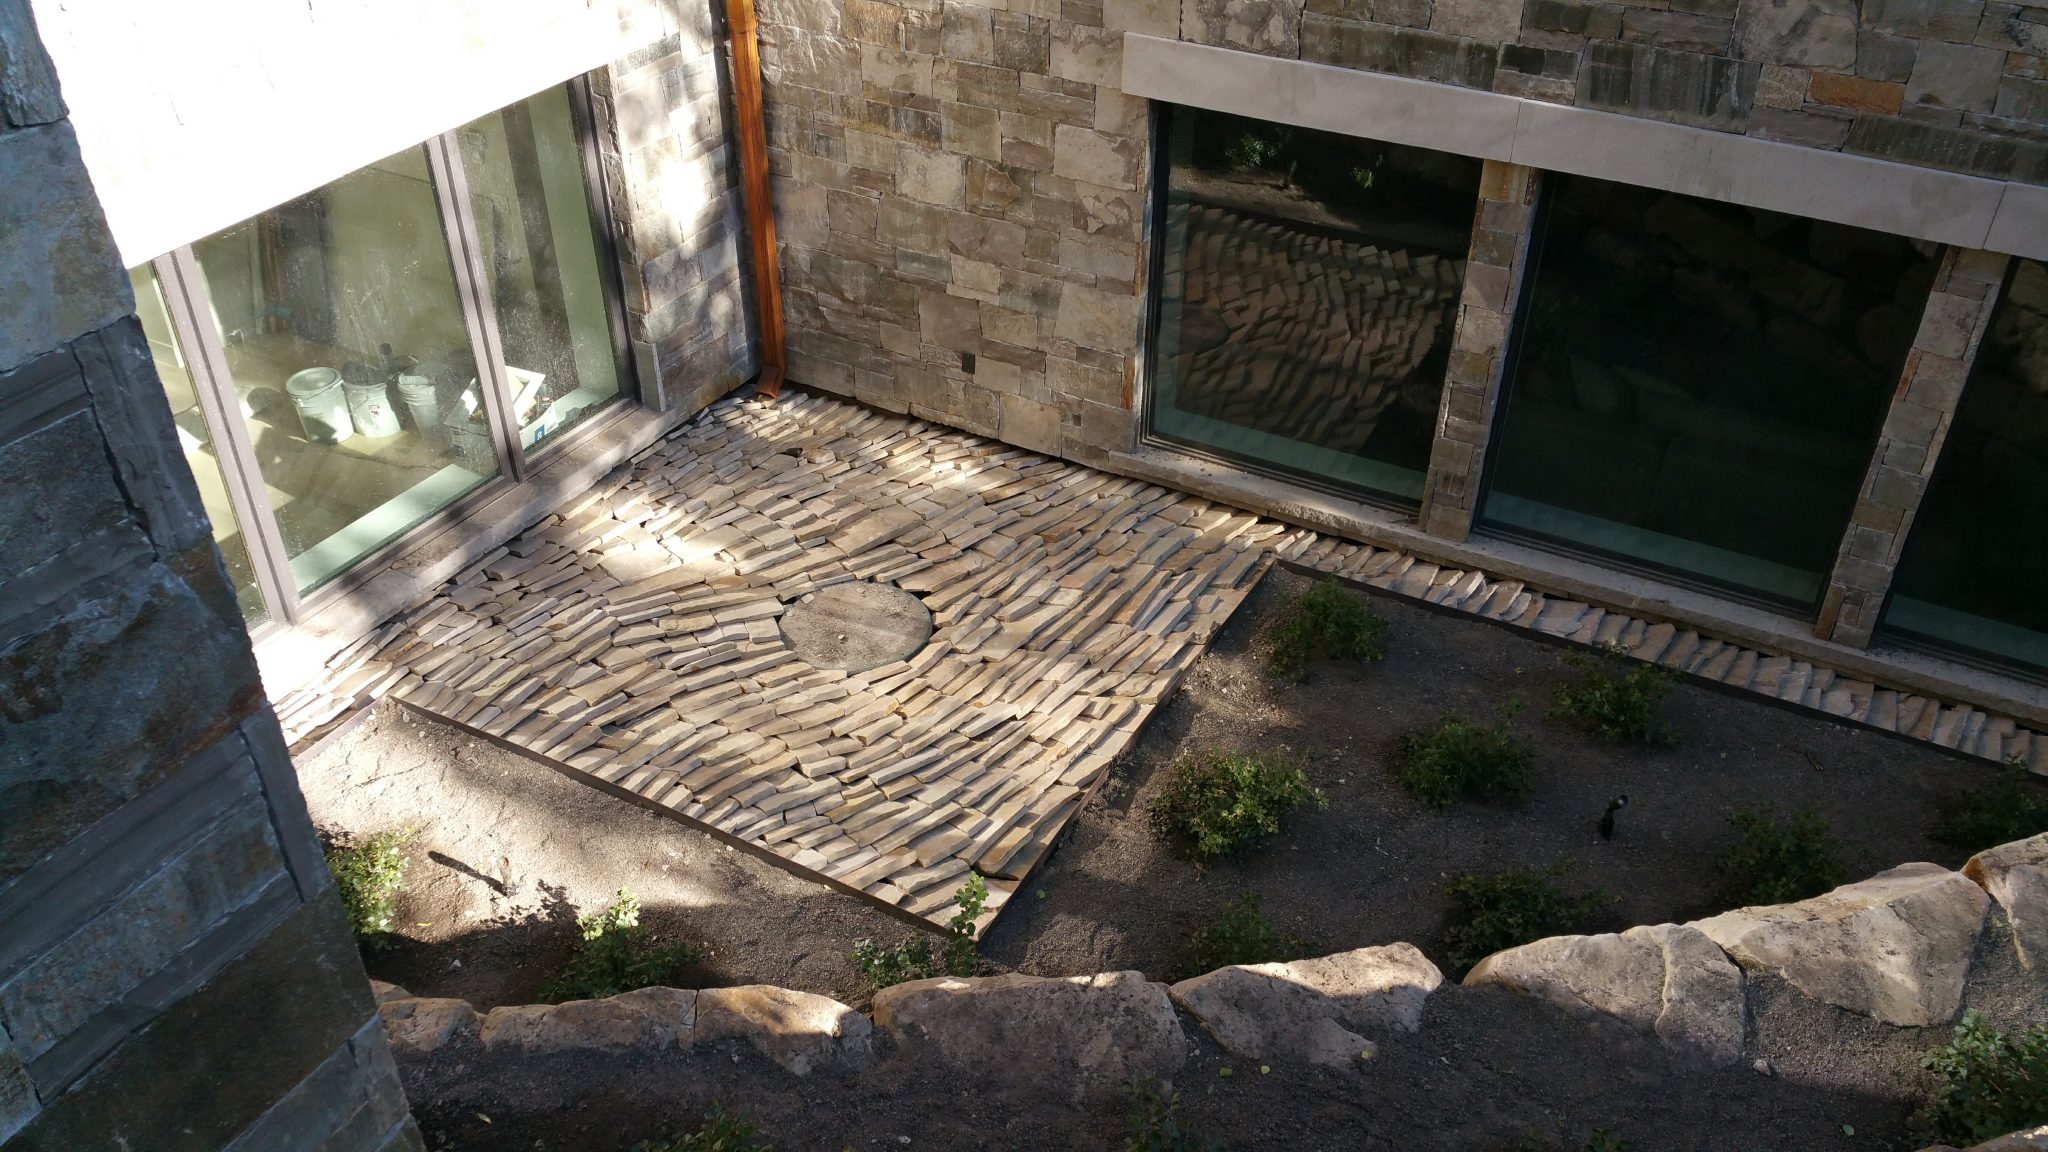 Laid stone mulch surrounding sculpture base in light well